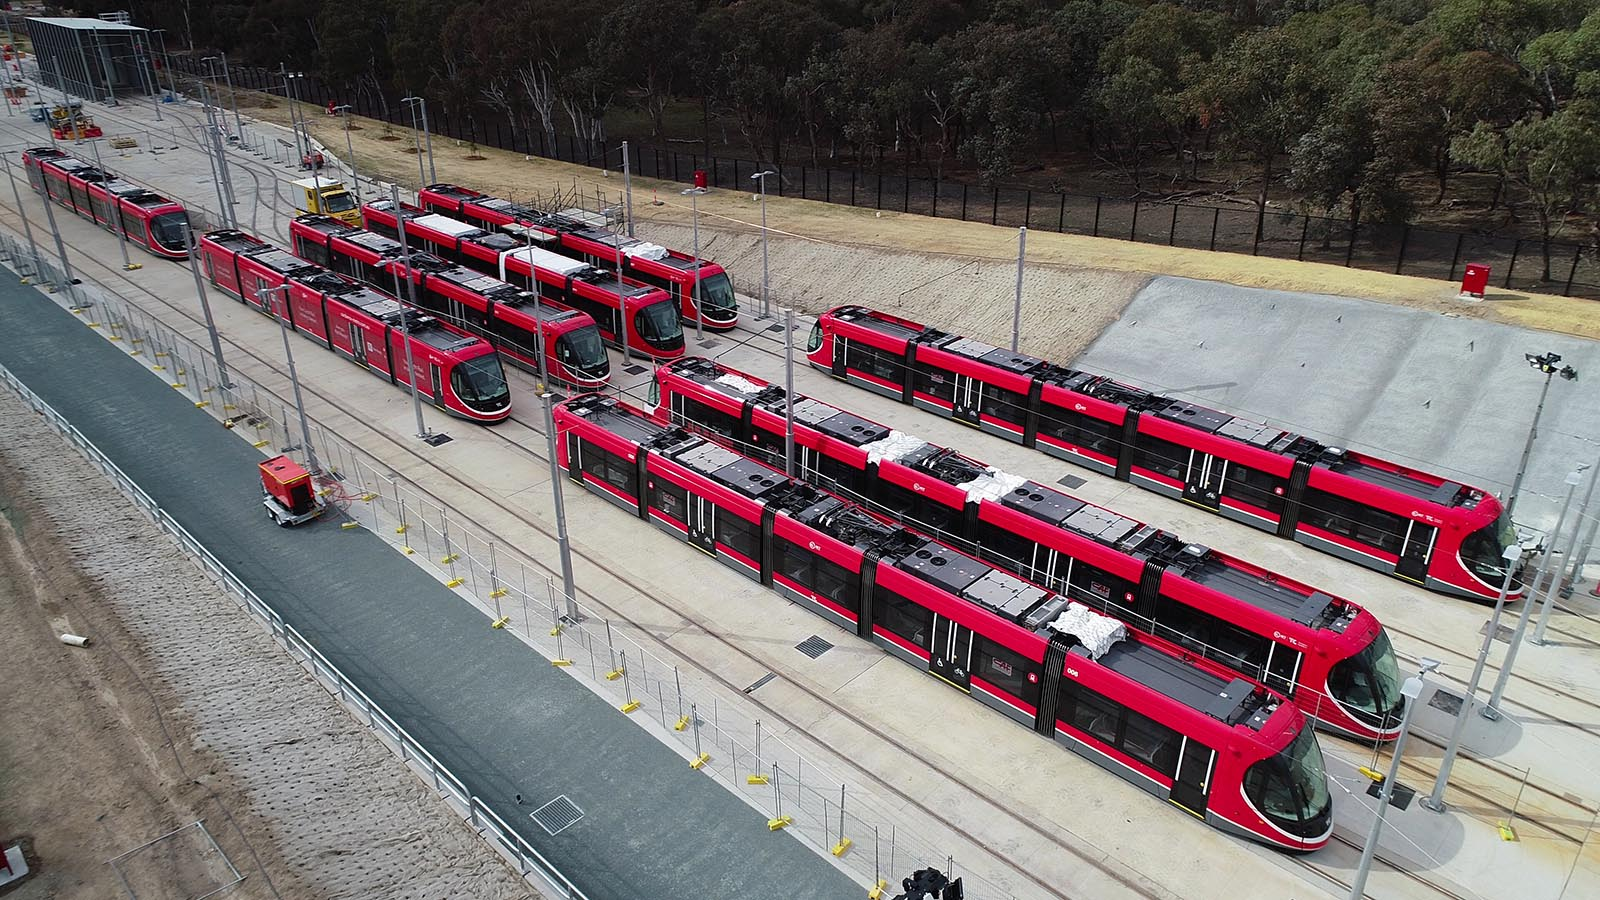 Birdeye view of Canberra Light Rail trains parked up at transport hub